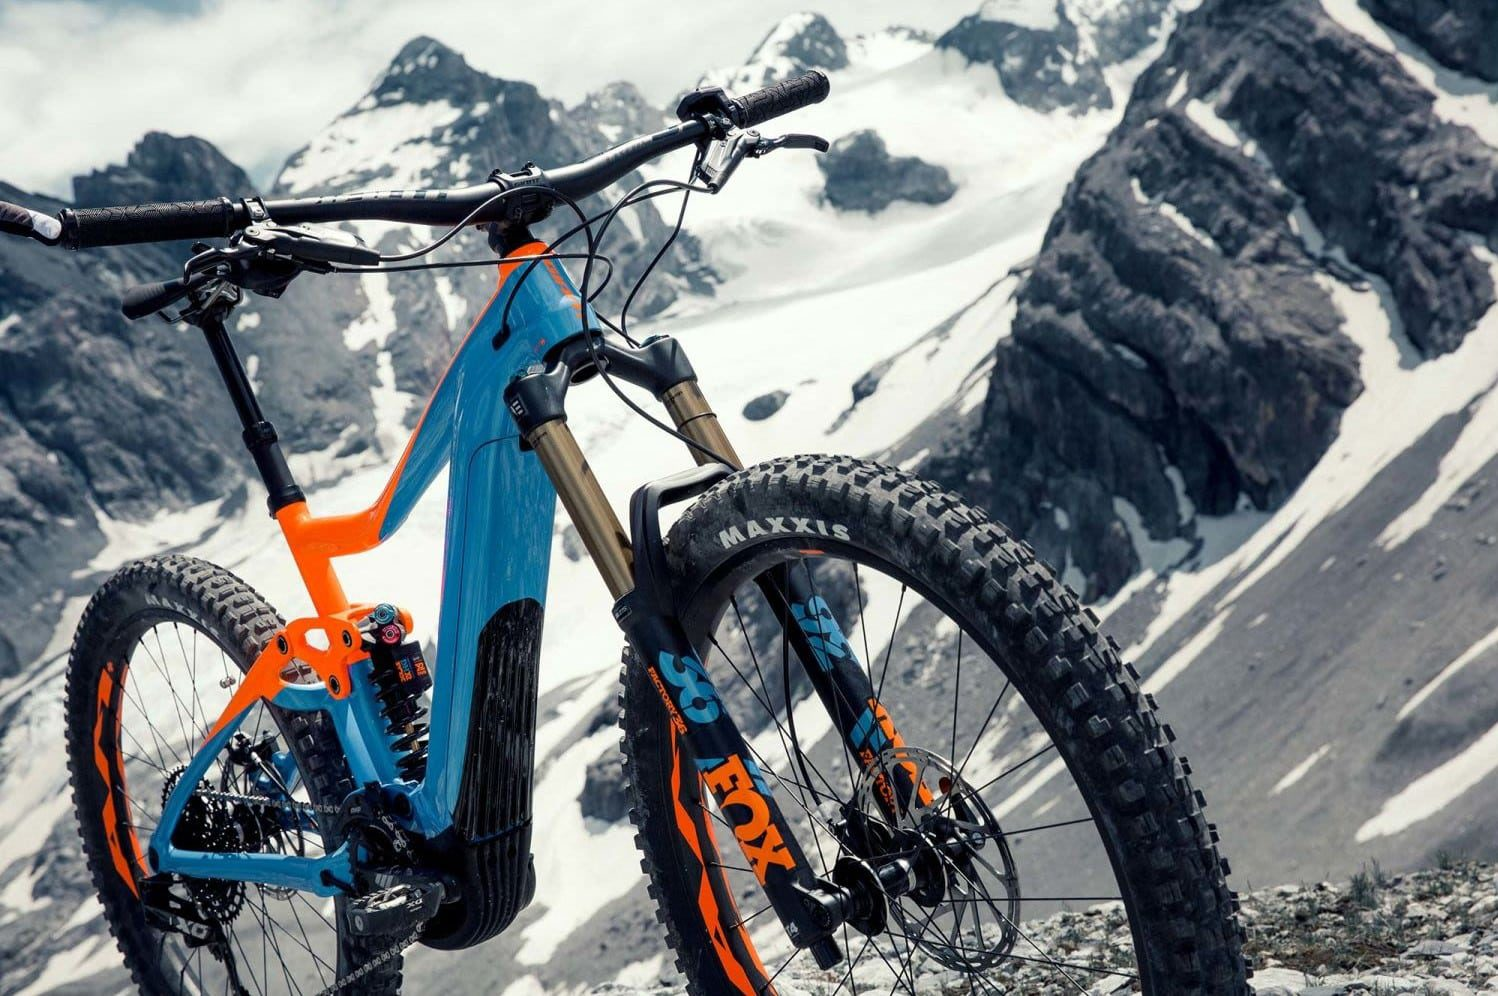 Giant Trance SX E+ buyer's guide